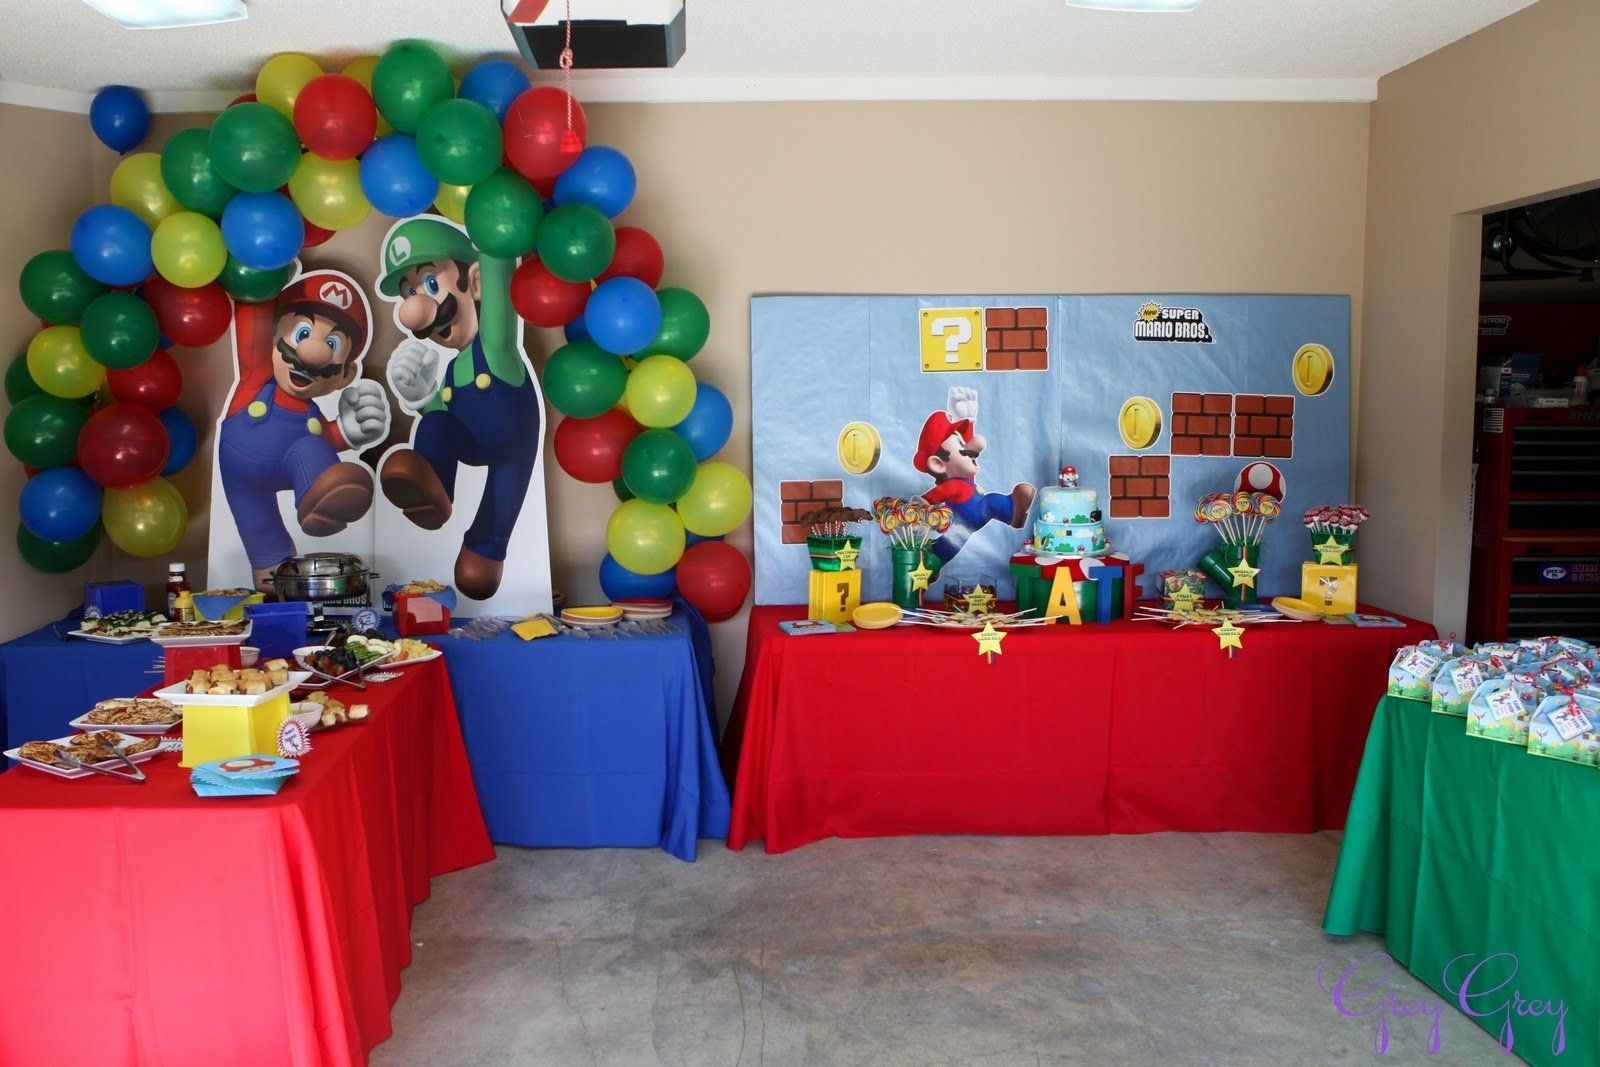 greygrey designs: {my parties} super mario birthday party!